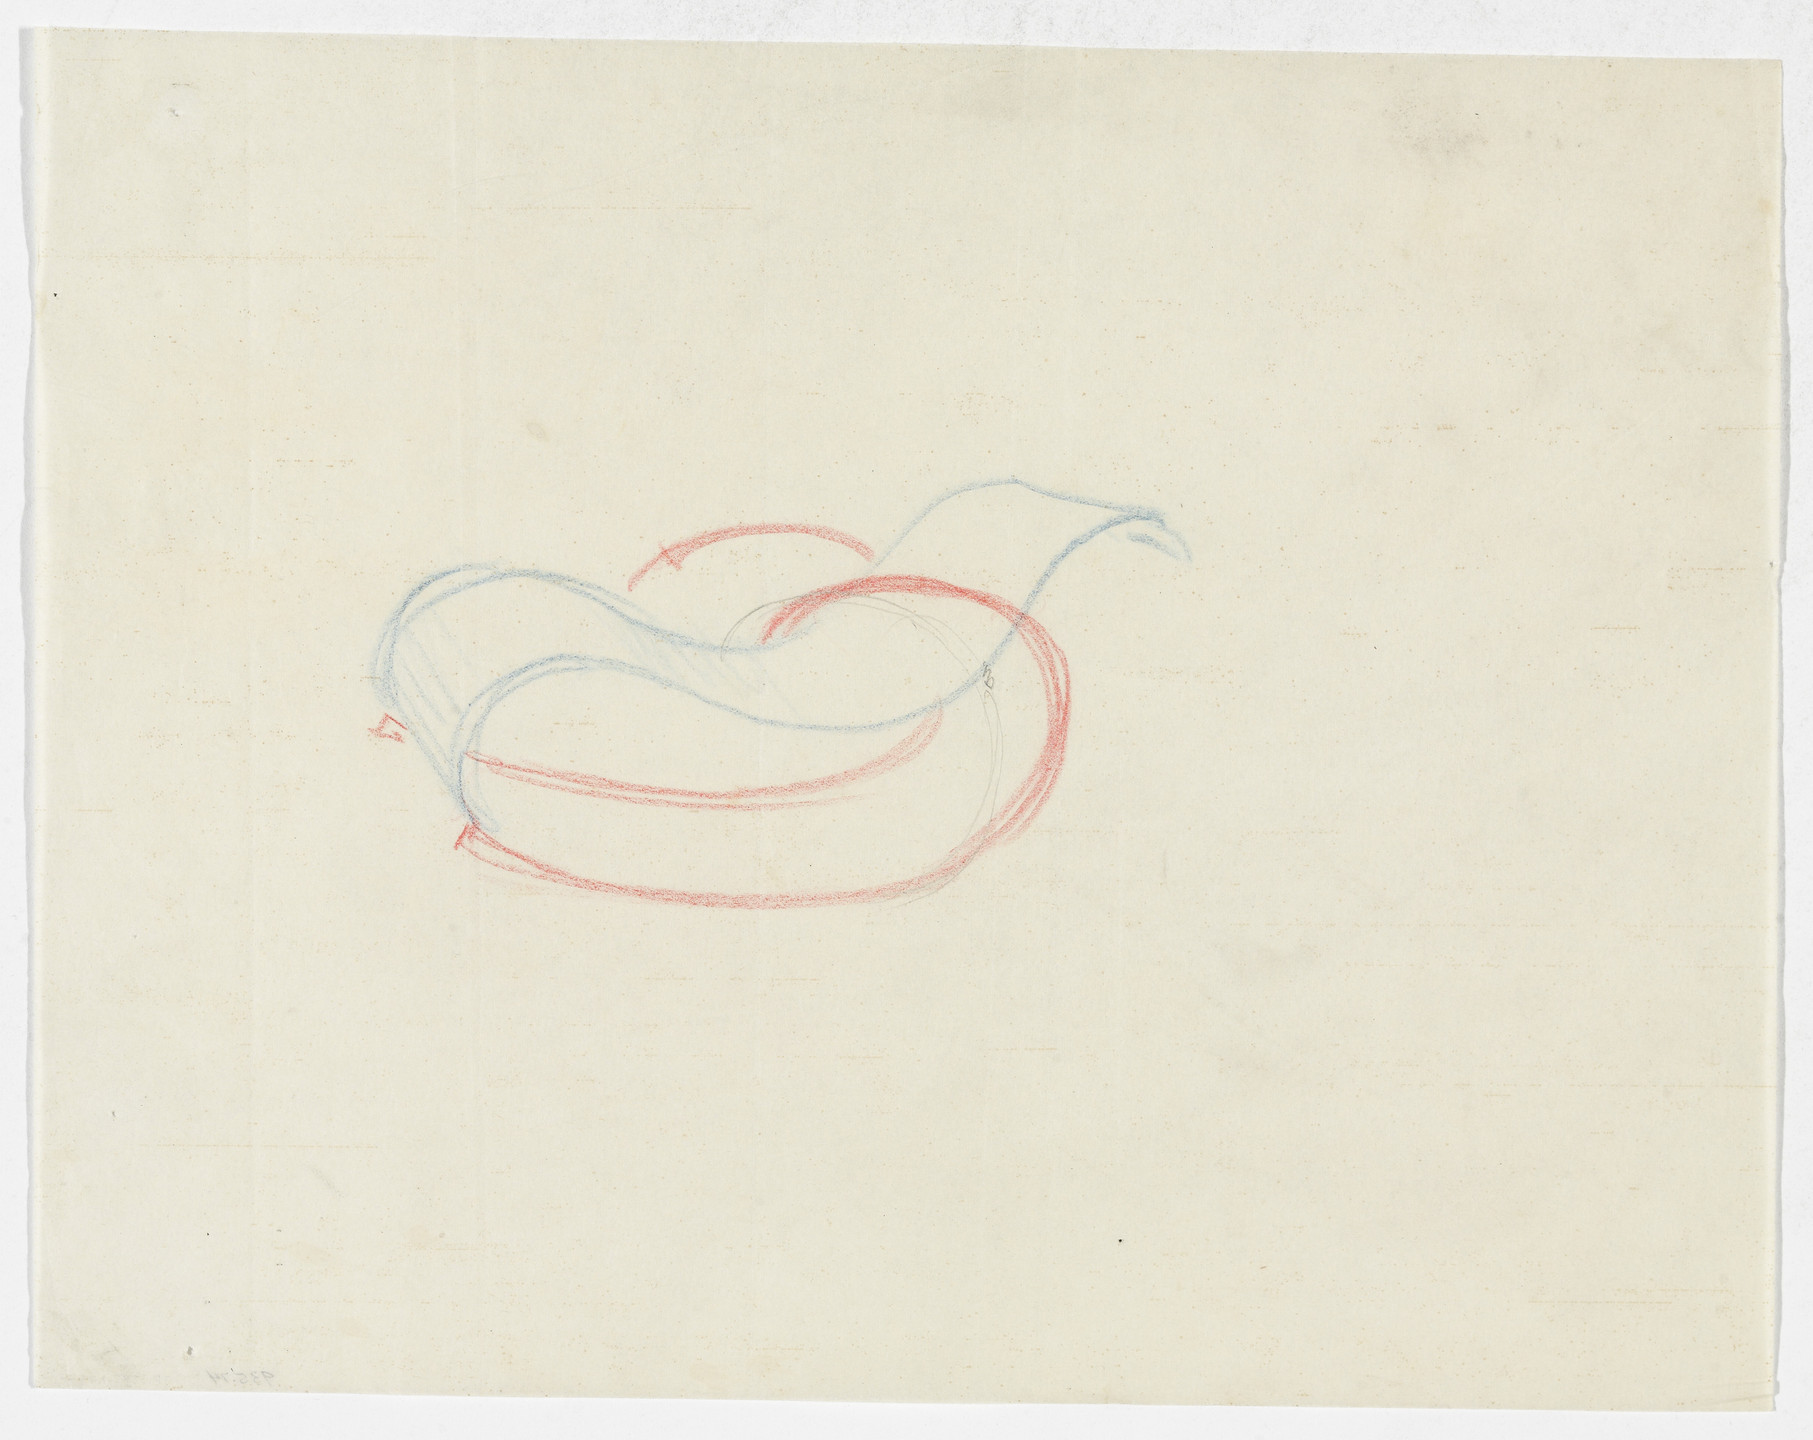 Ludwig Mies van der Rohe. Reclining Chair with Arms and Rocker (Perspective sketch). 1934